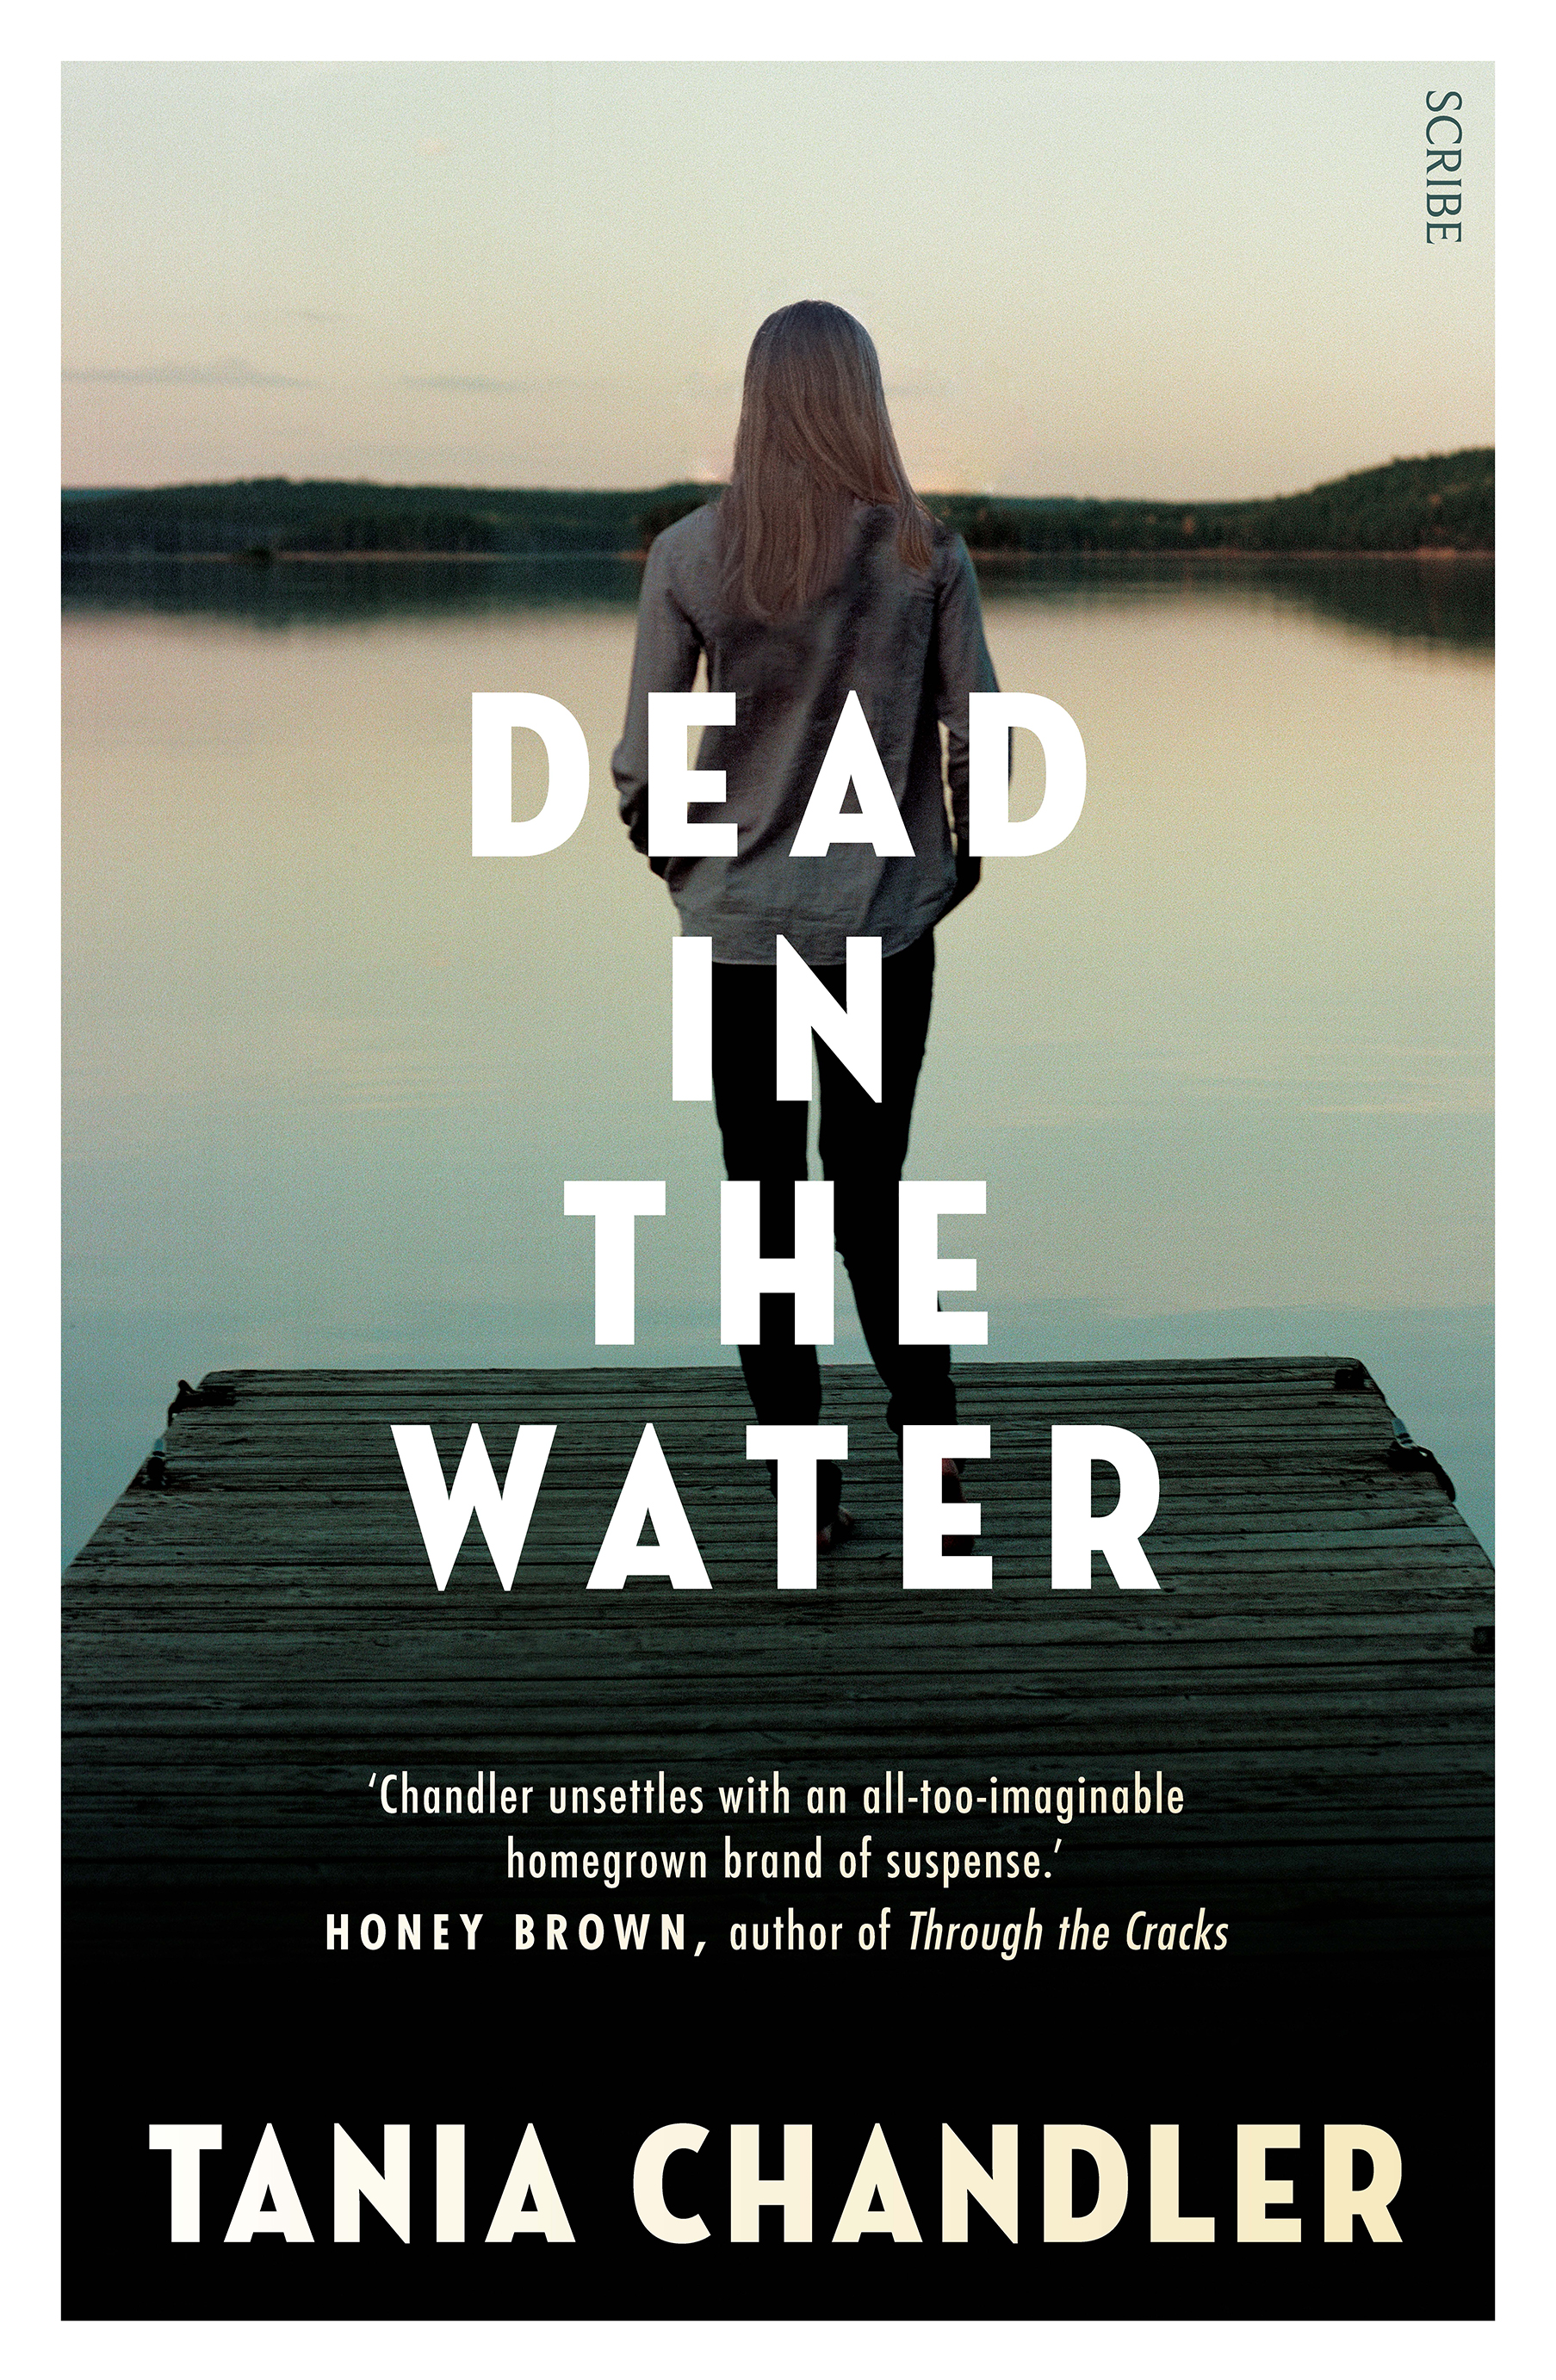 Dead in the Waterby Tania Chandler